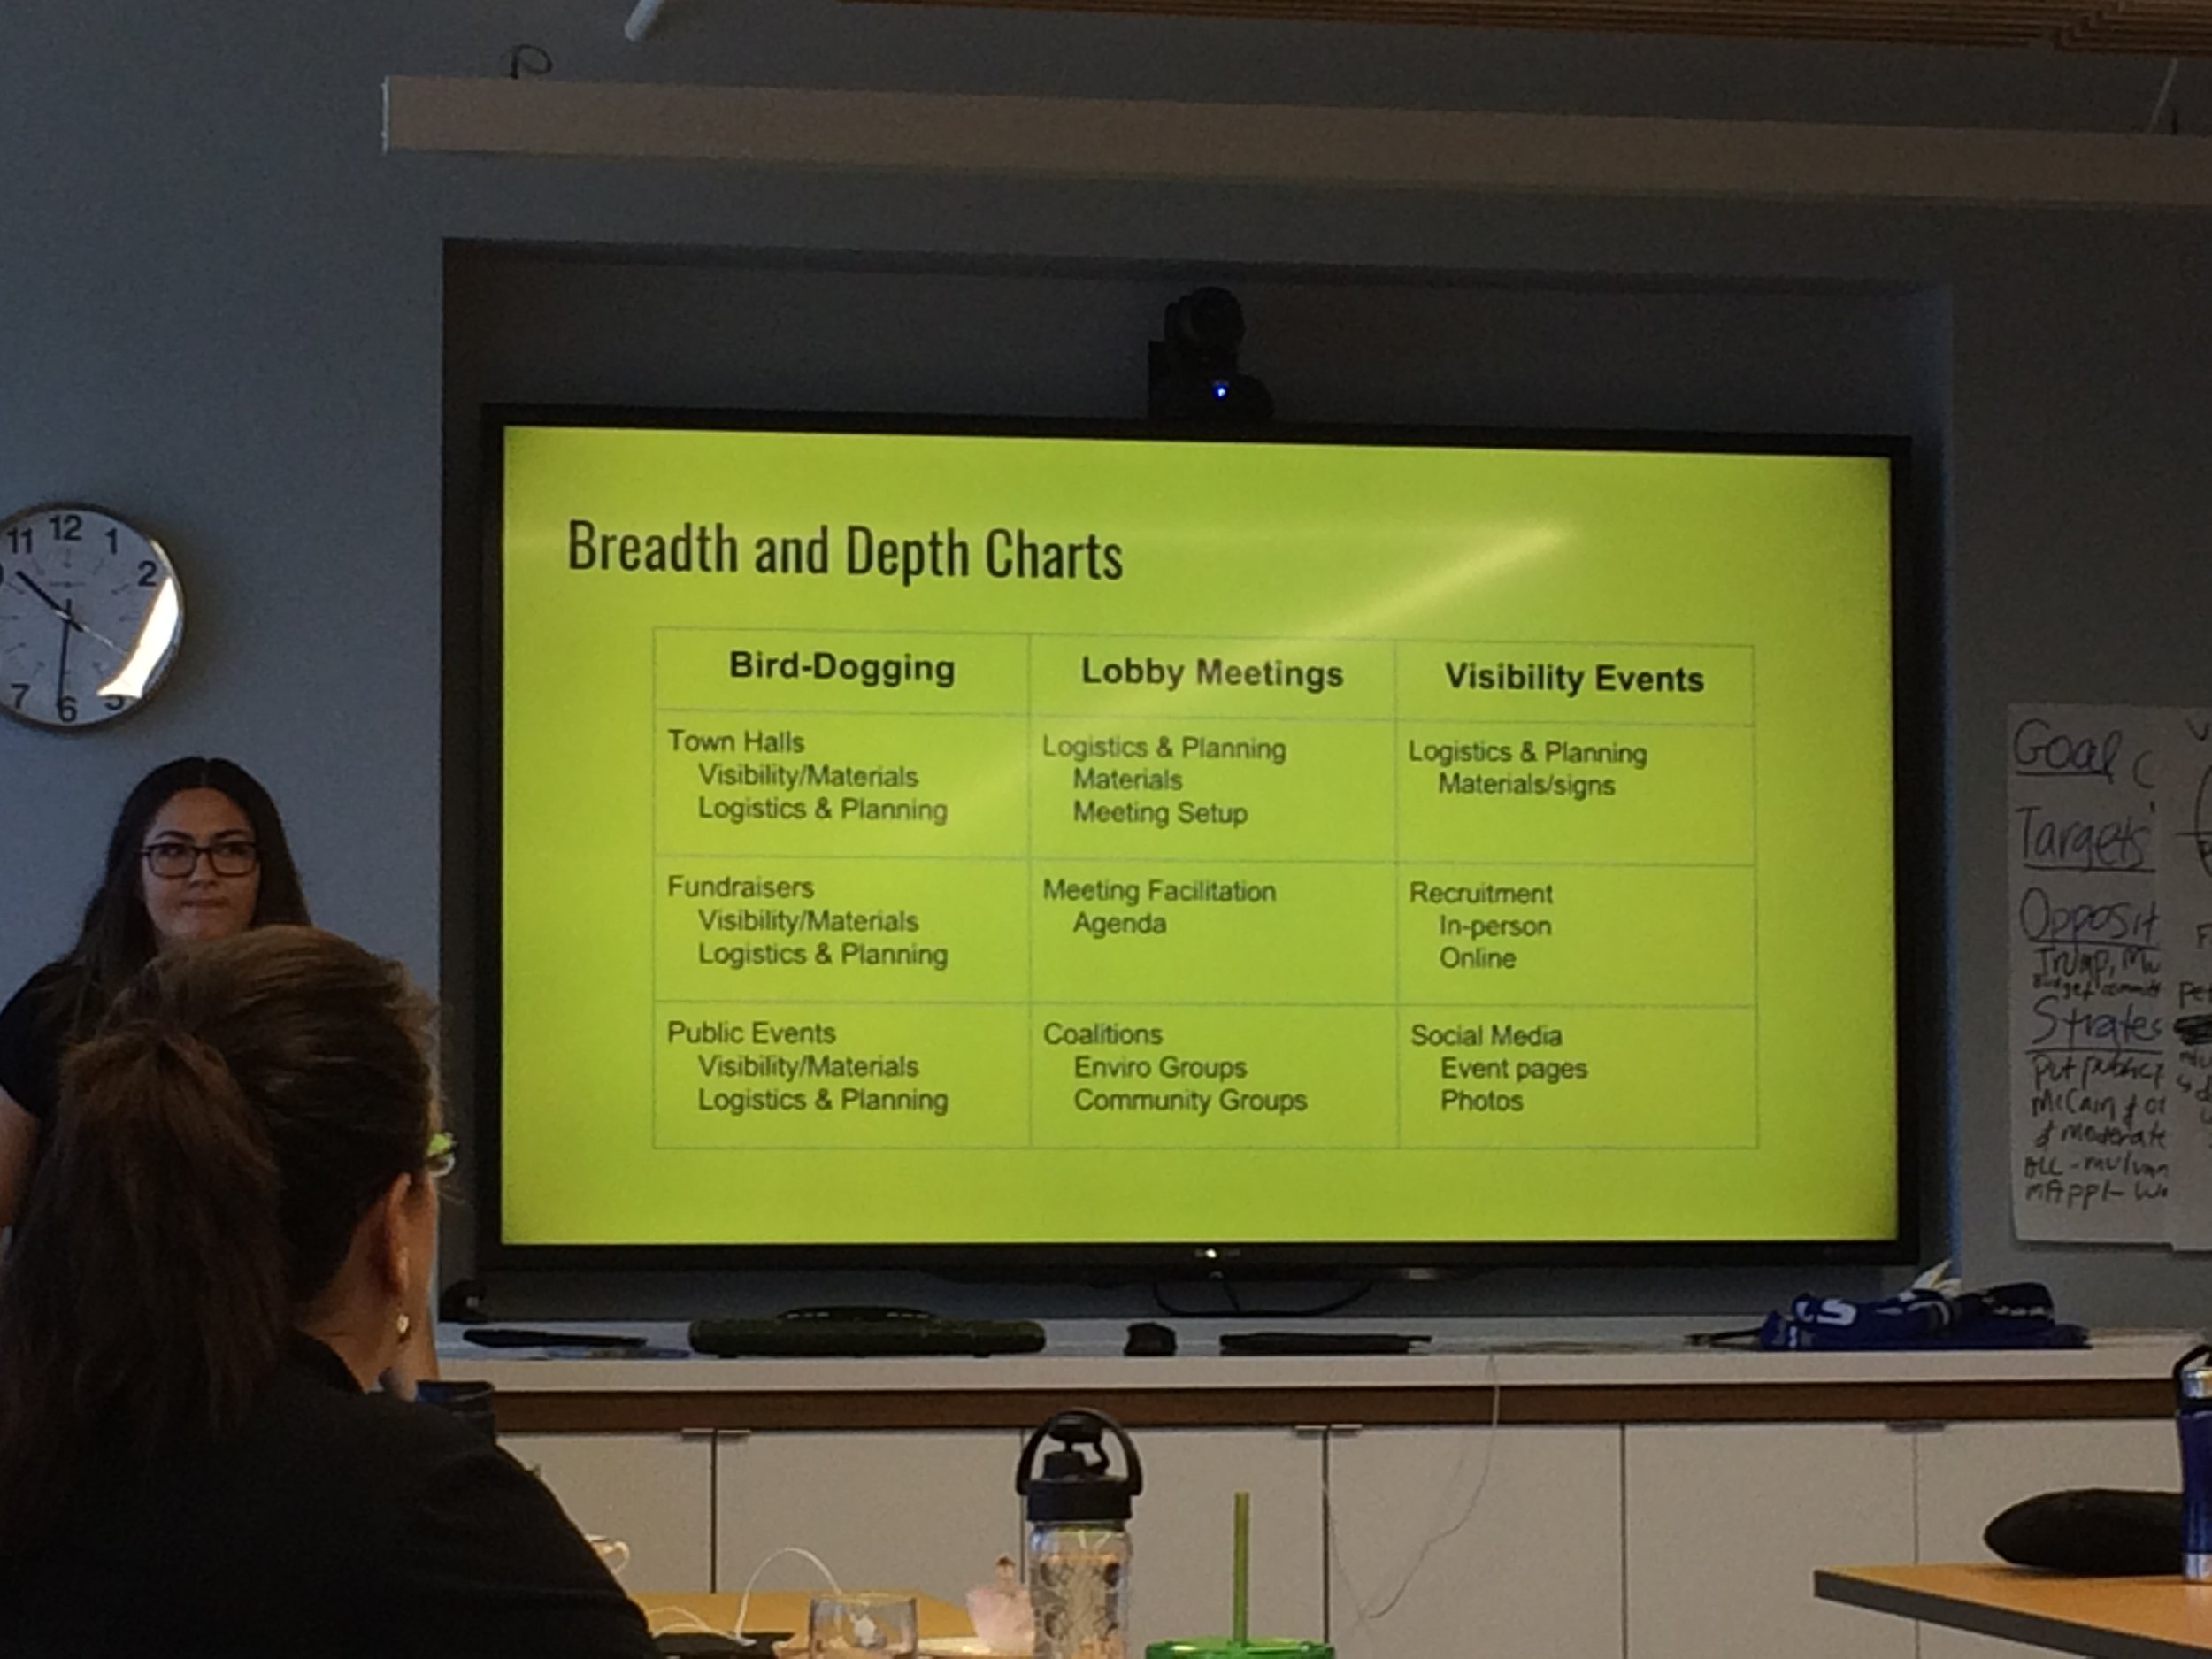 Helpful tools like breadth and depth charts allow activists to understand and evaluate different methods of engagement.